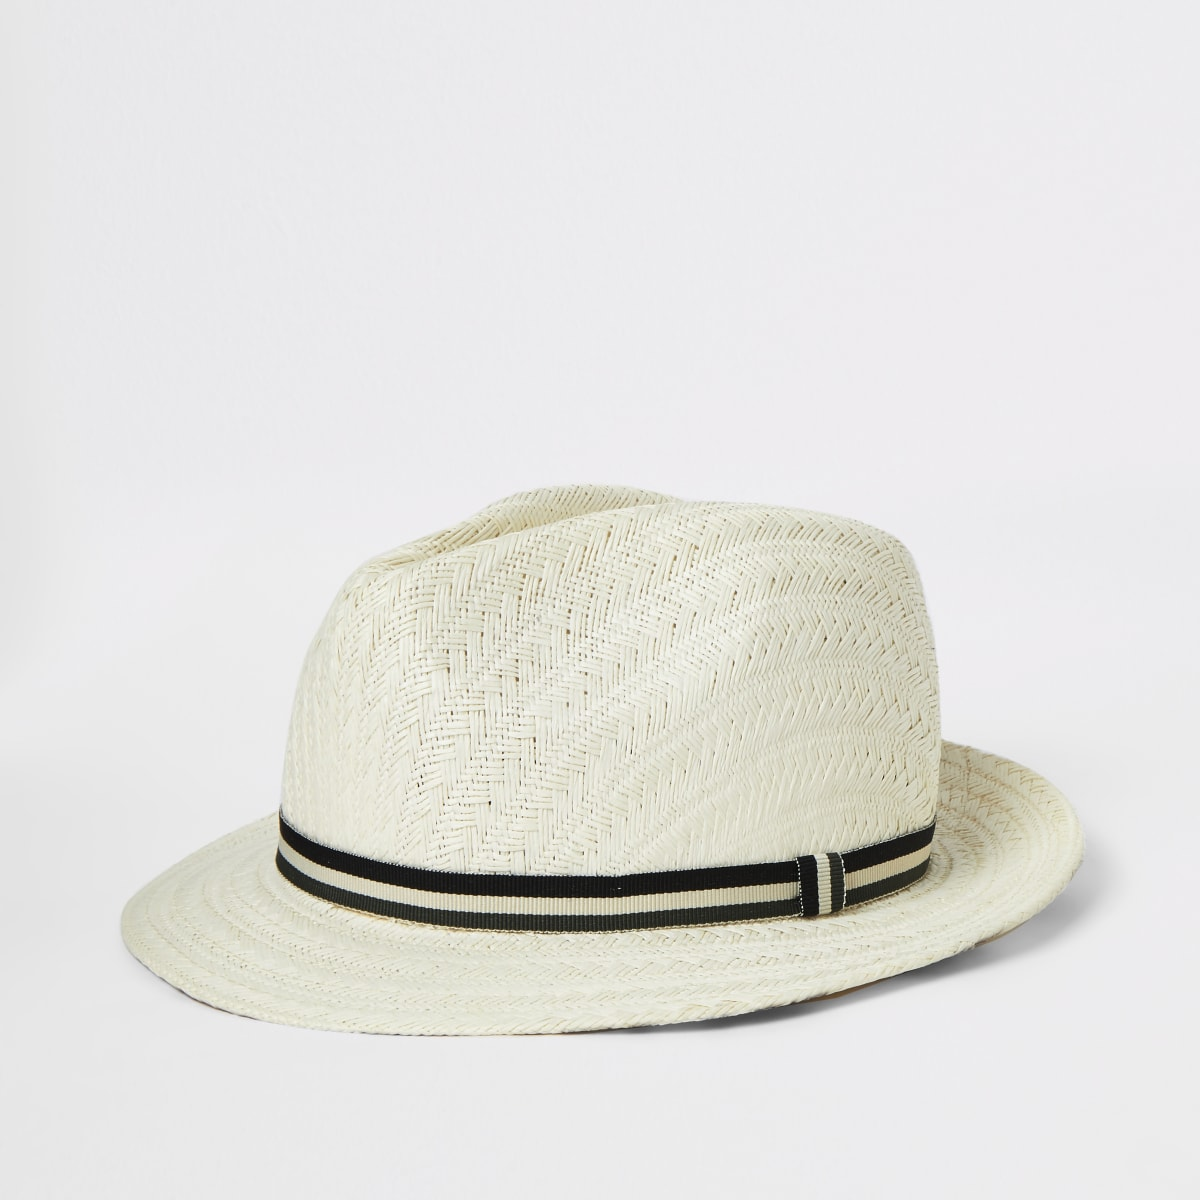 Boys light brown straw hat